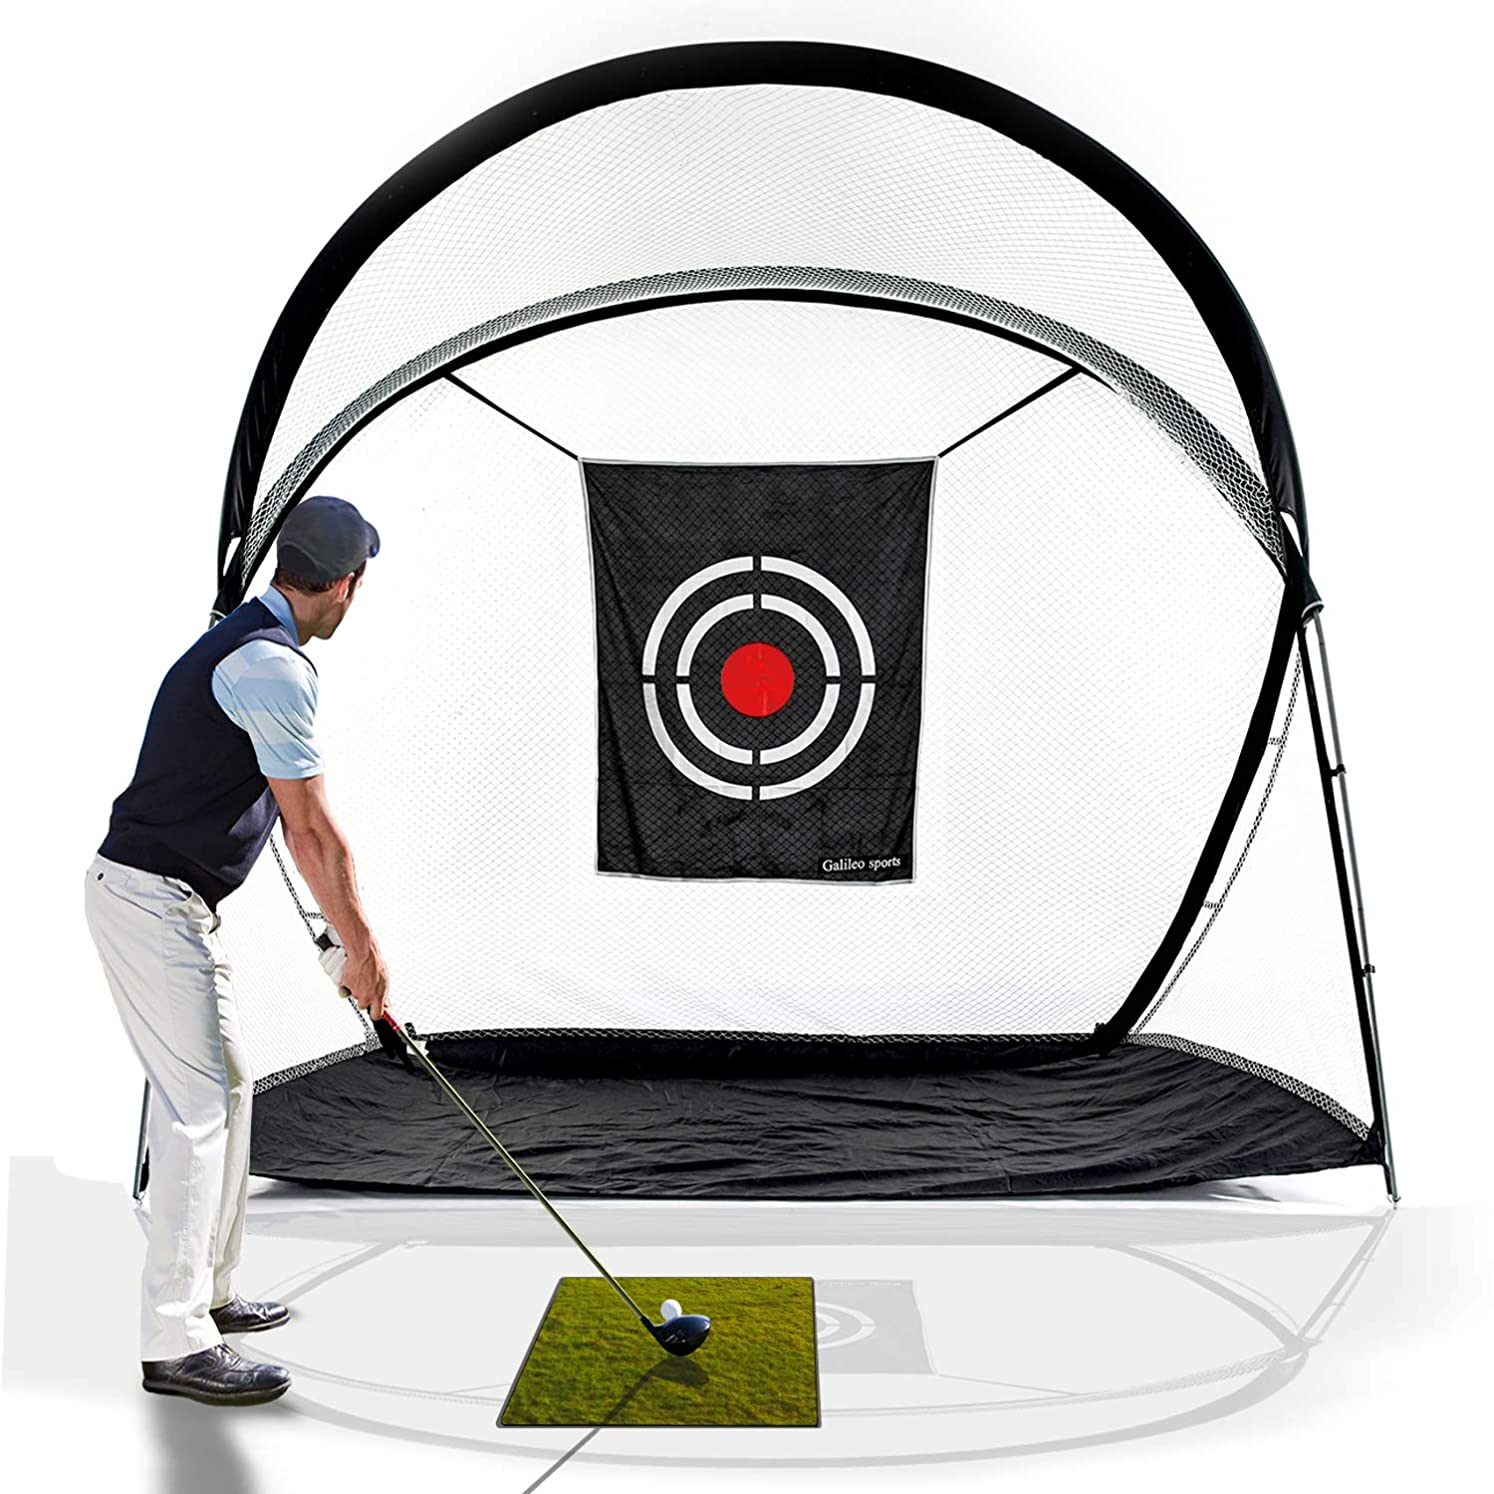 Galileo Golf Practice Net Training Hitting Driving Golf Net for Backyard Indoor Use with Target&Carry Bag10.5'(L) x5.5'(W) x8.6'(H) qghnajihz5948569